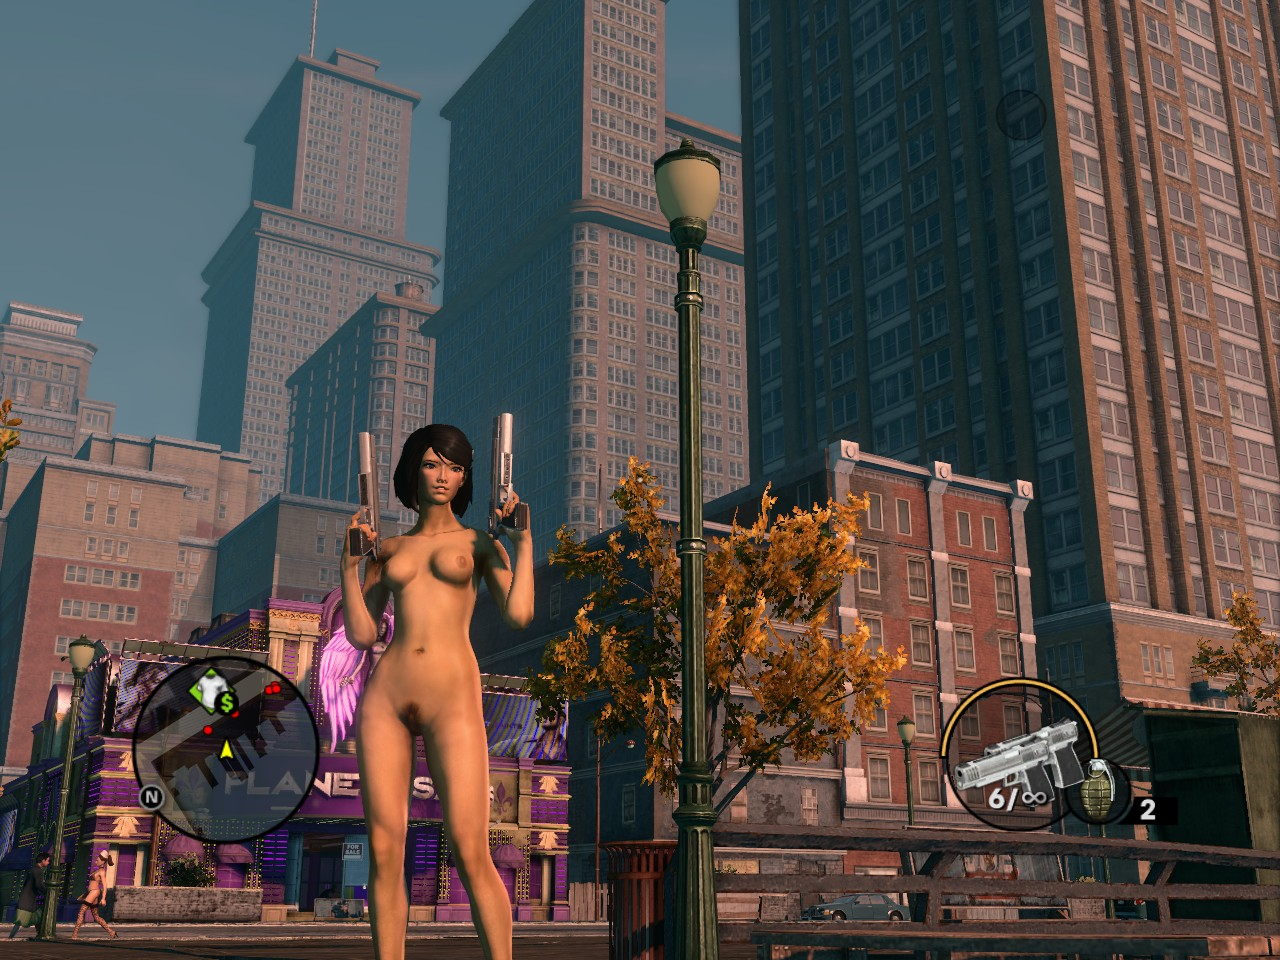 Saints row 2 nude unblured porn photo